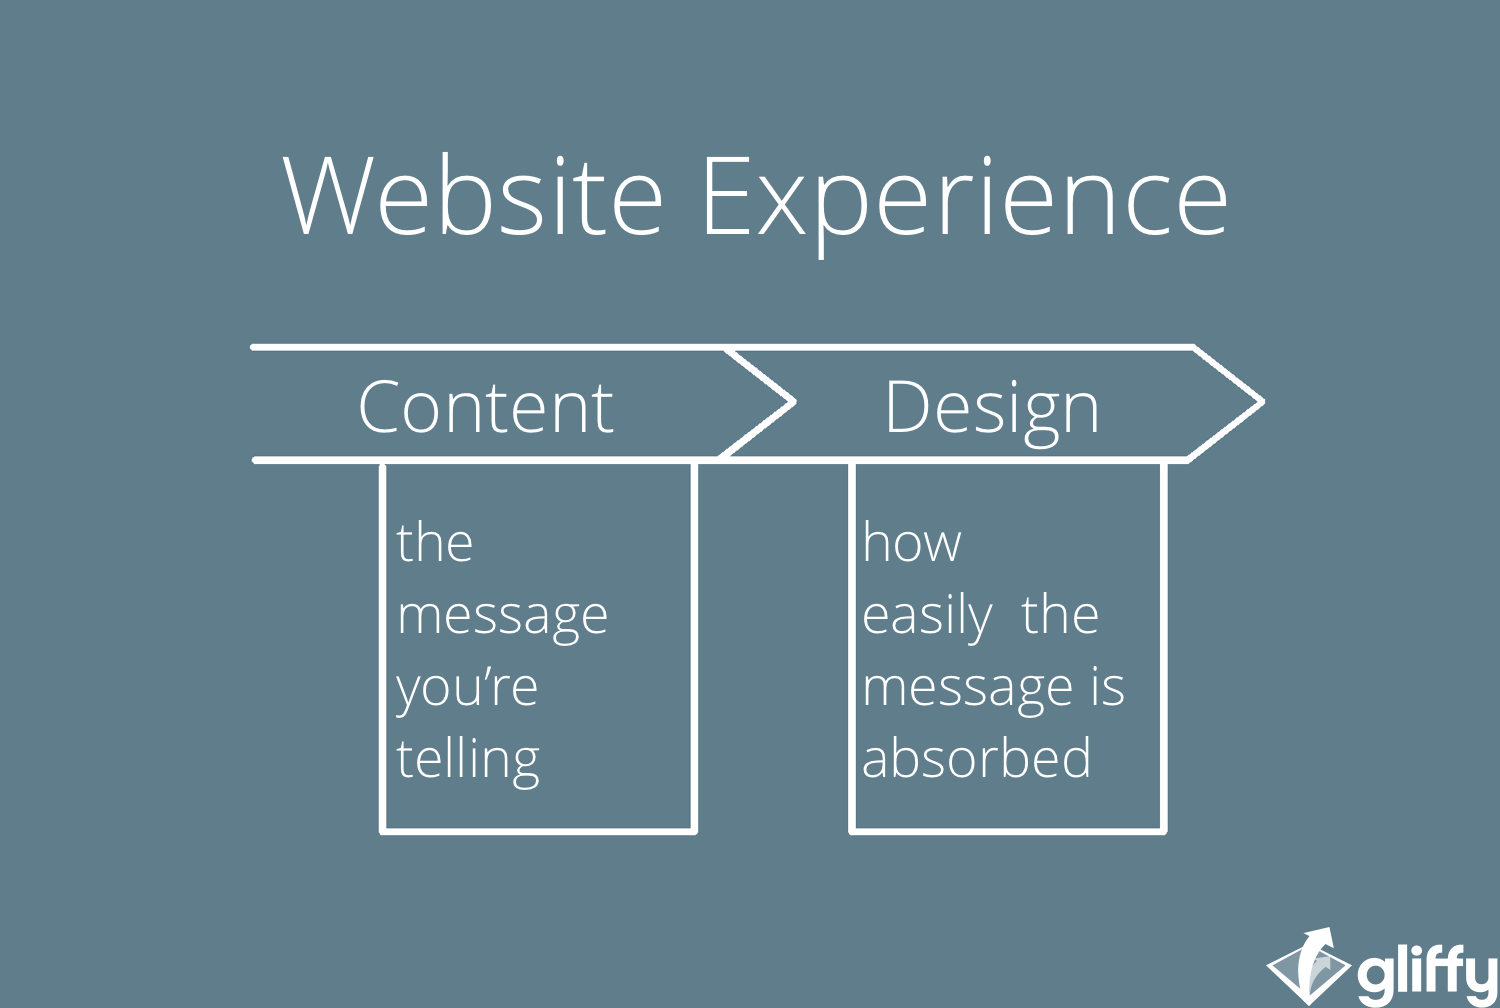 Website Experience